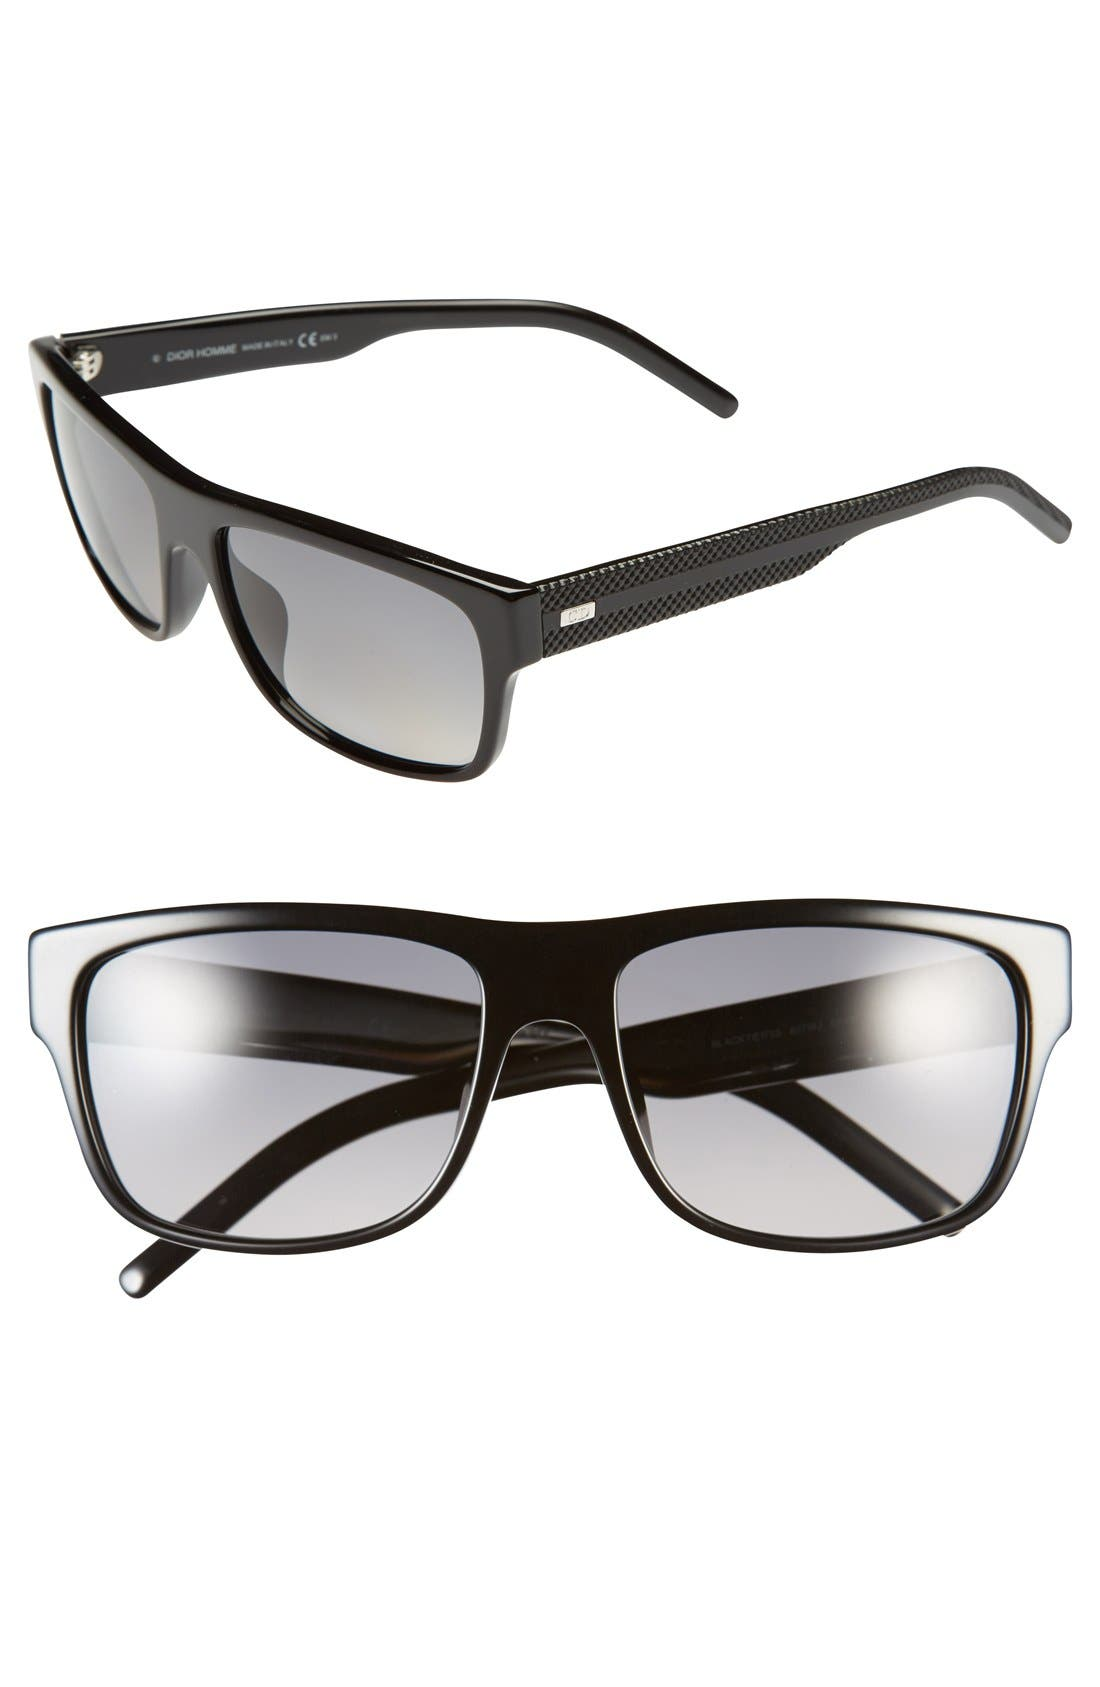 Alternate Image 1 Selected - Dior Homme 57mm Polarized Sunglasses